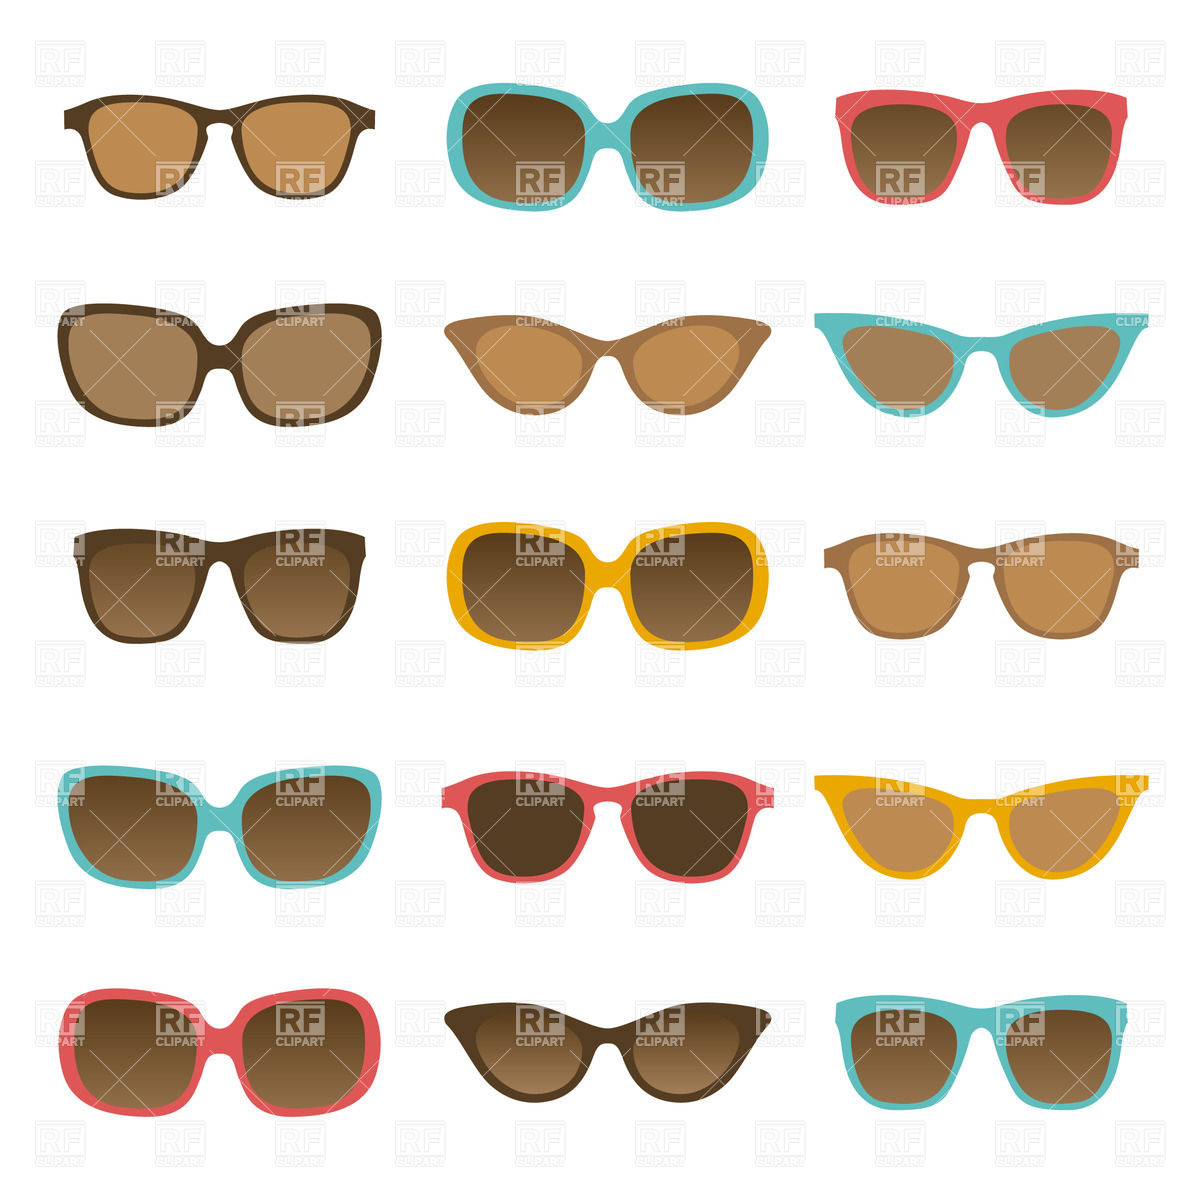 1200x1200 Collection Of Fashionable Sunglasses Vector Image Vector Artwork